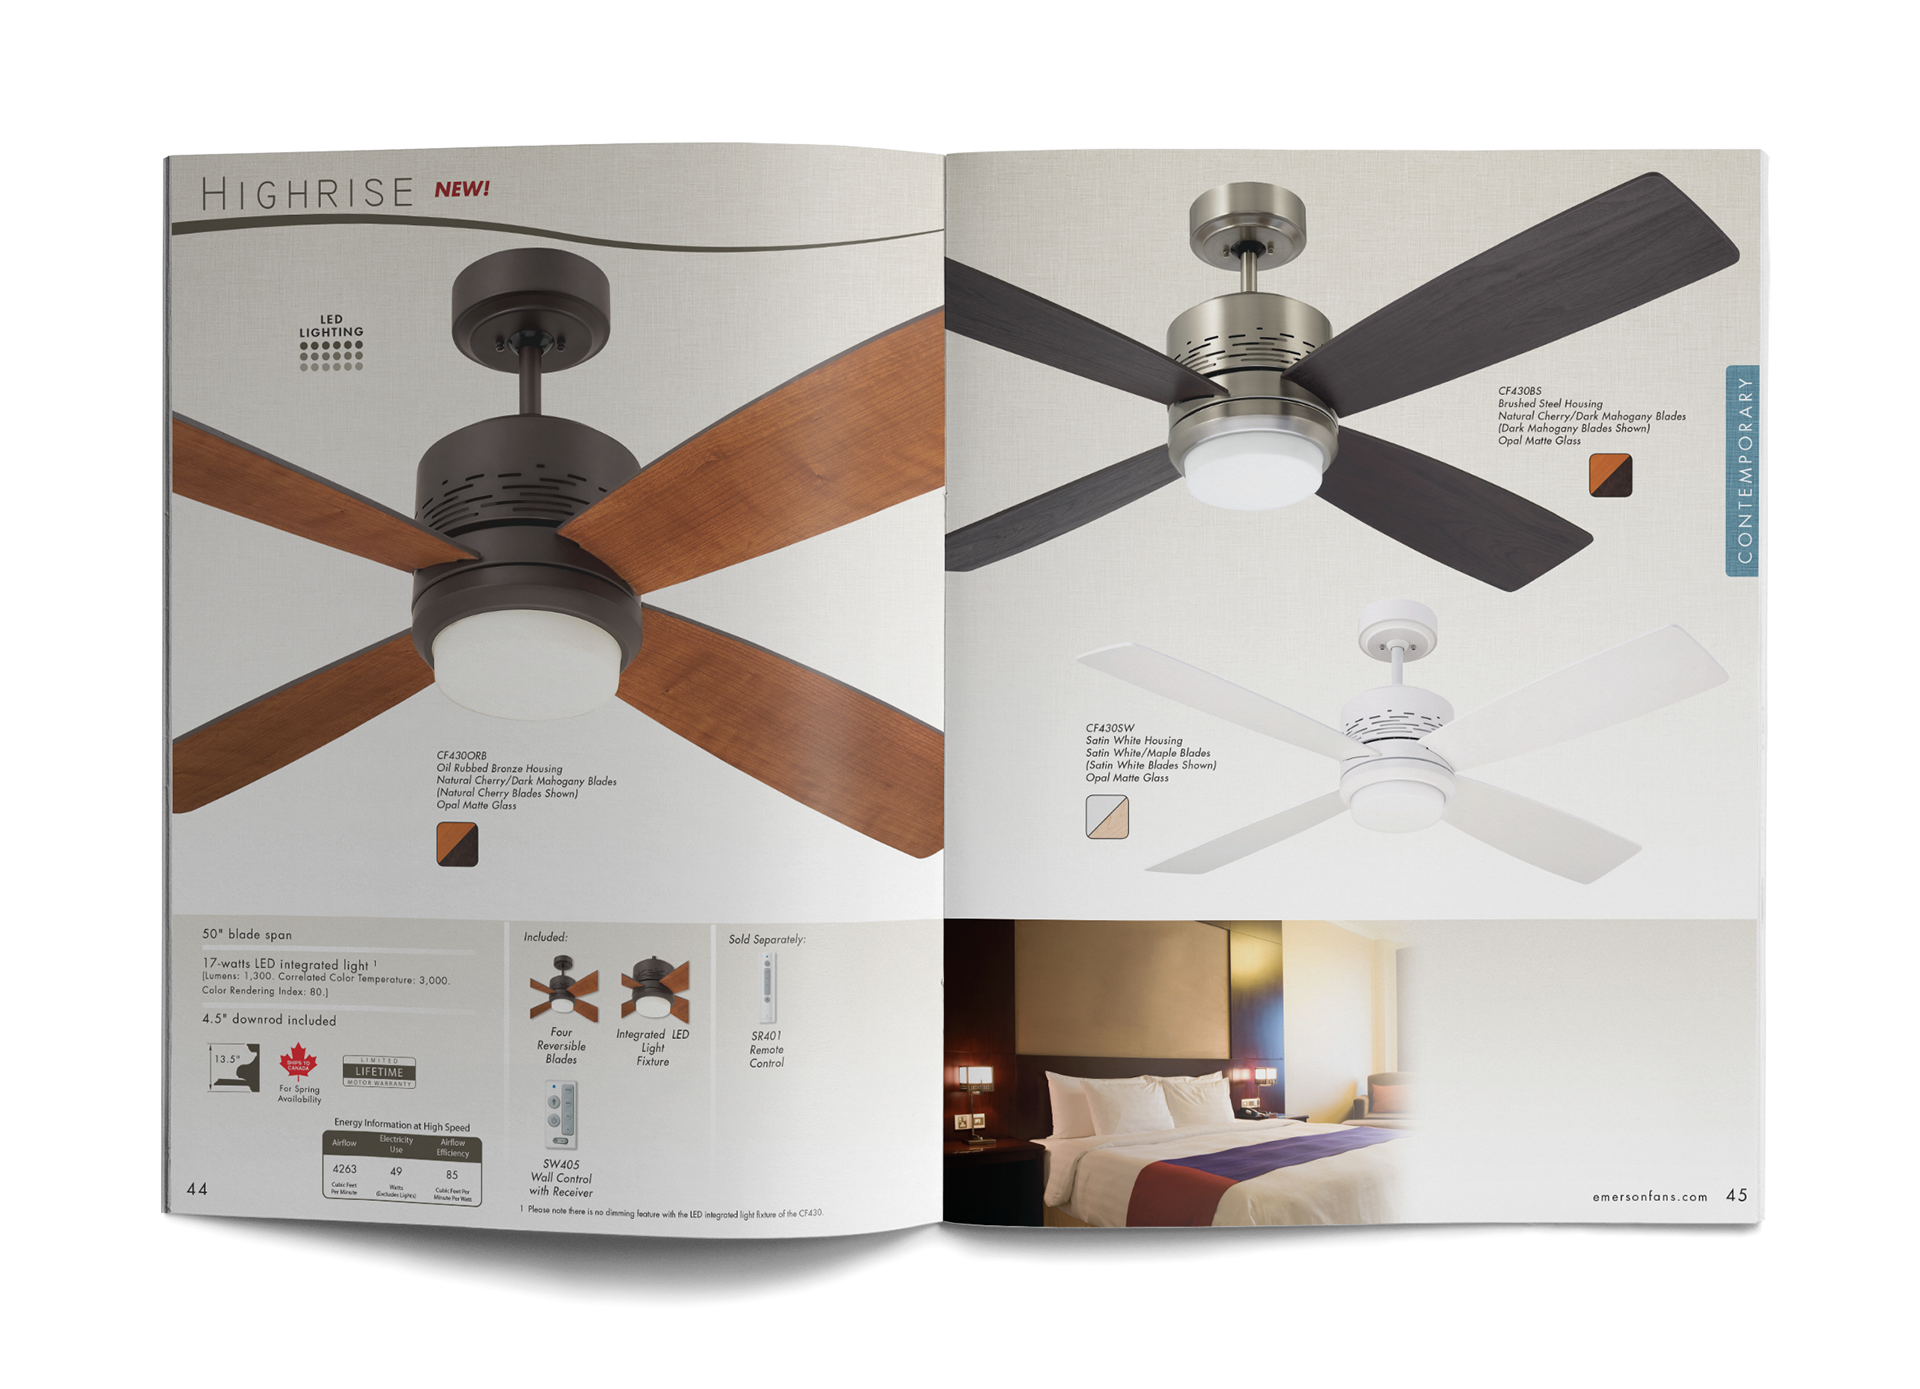 Mitch linhardt emerson electric i also worked on various other marketing pieces from stand alone advertisements and promotional pieces to updated packaging ceiling fans were the main mozeypictures Choice Image